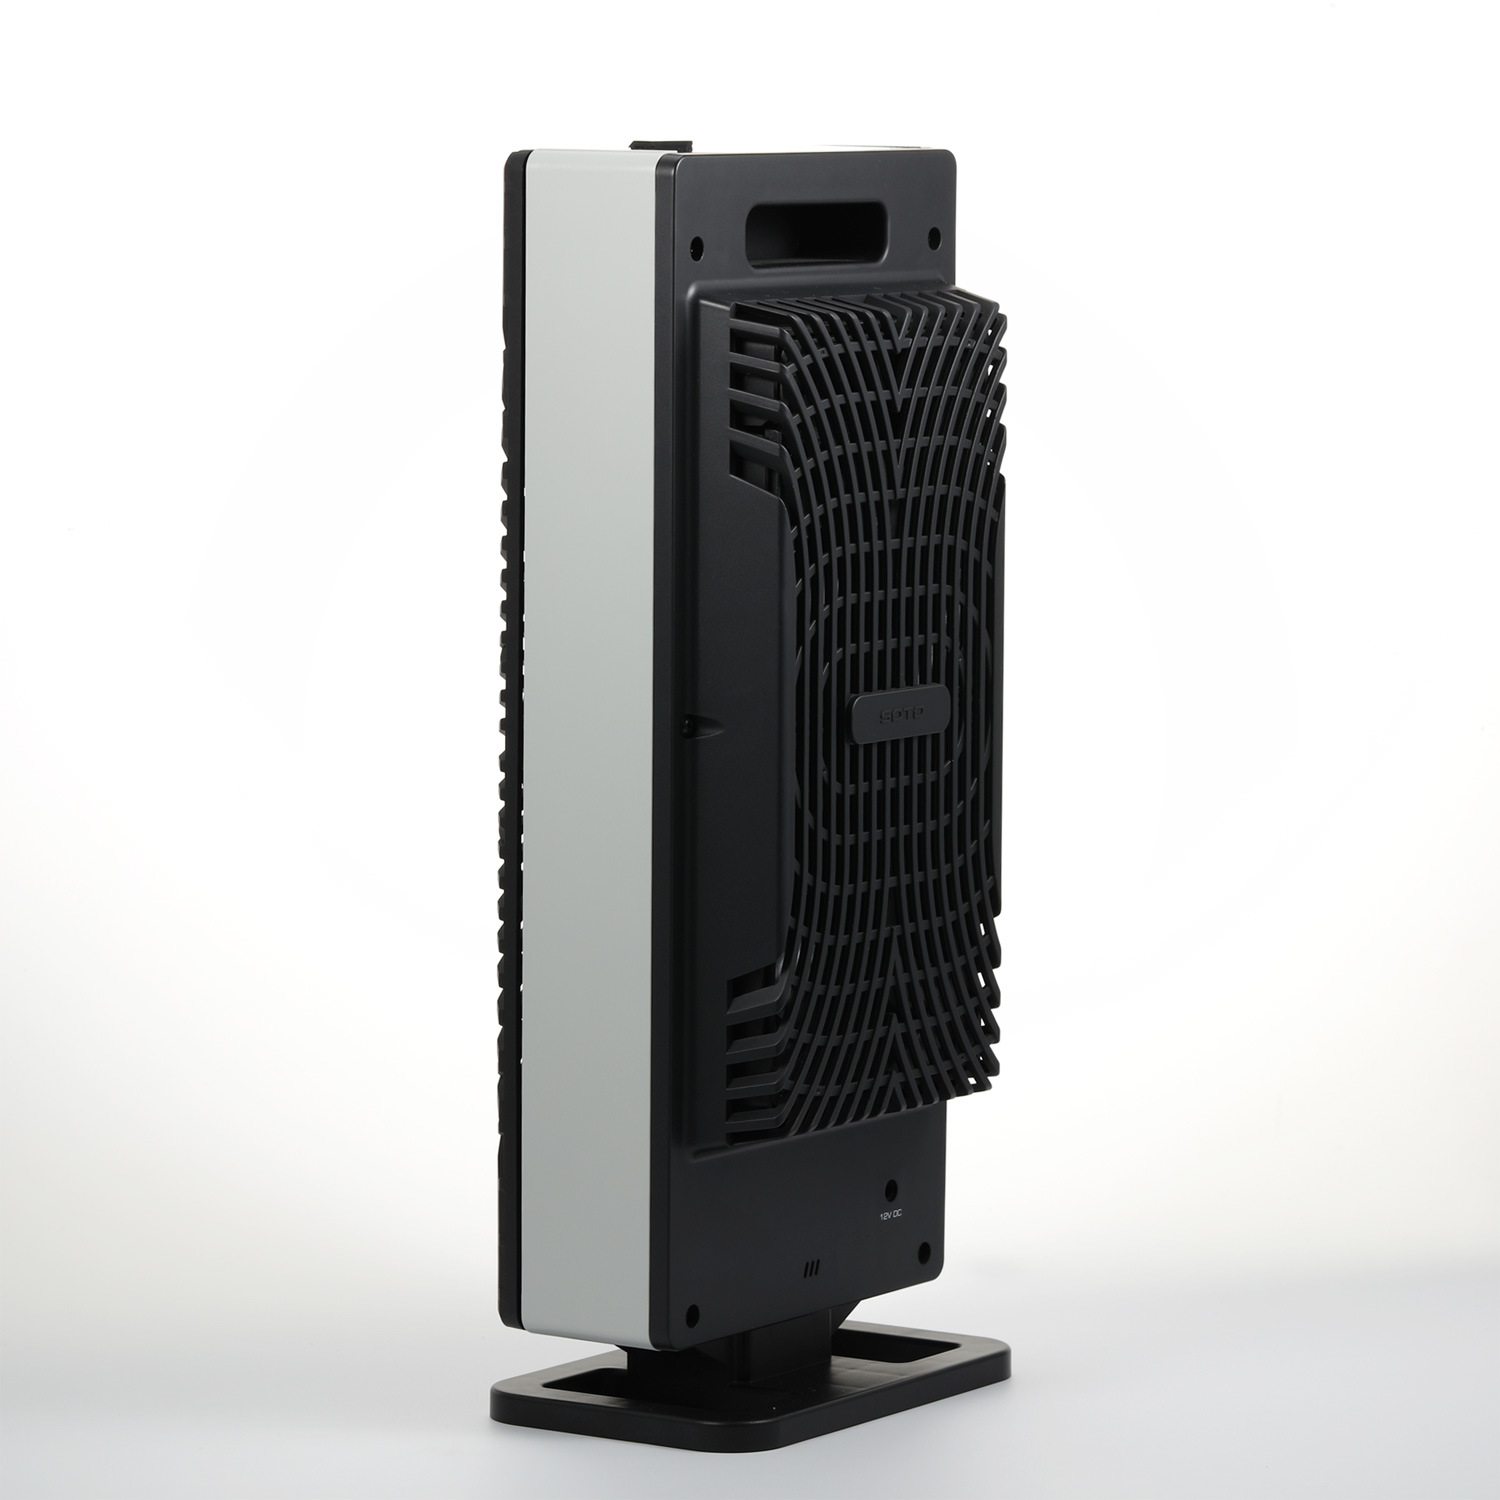 Soto-Jx102 Desktop Air Purifier, Tabletop Air Purifier